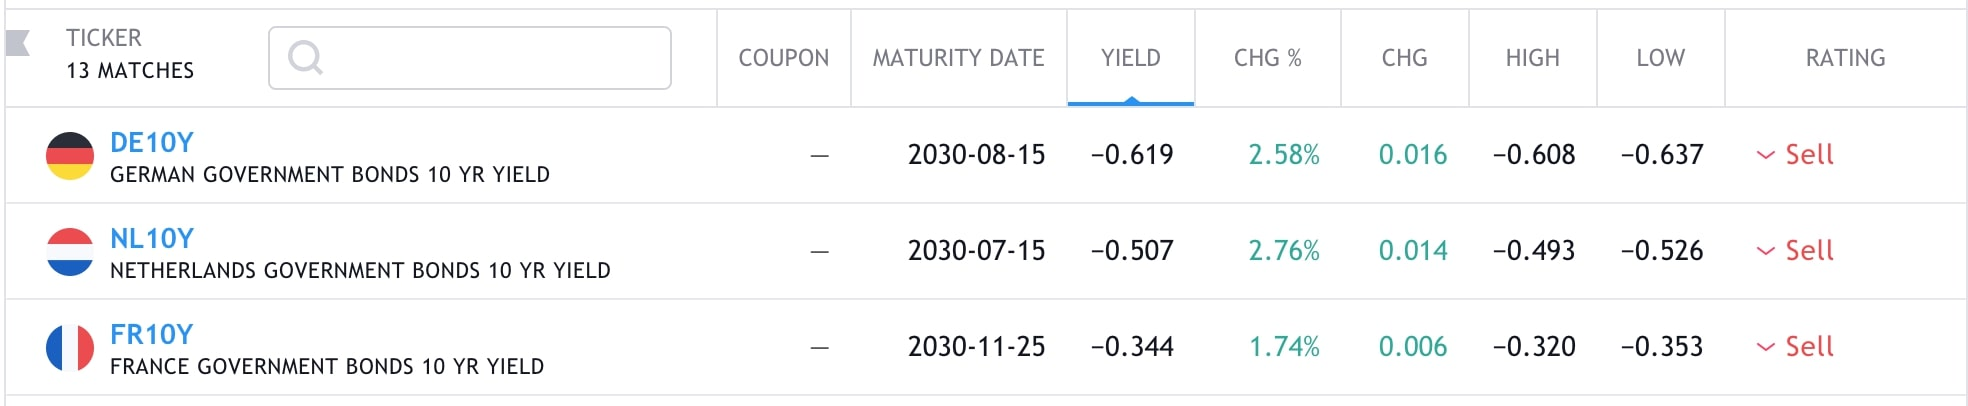 Bonds yield negative rates in some countries